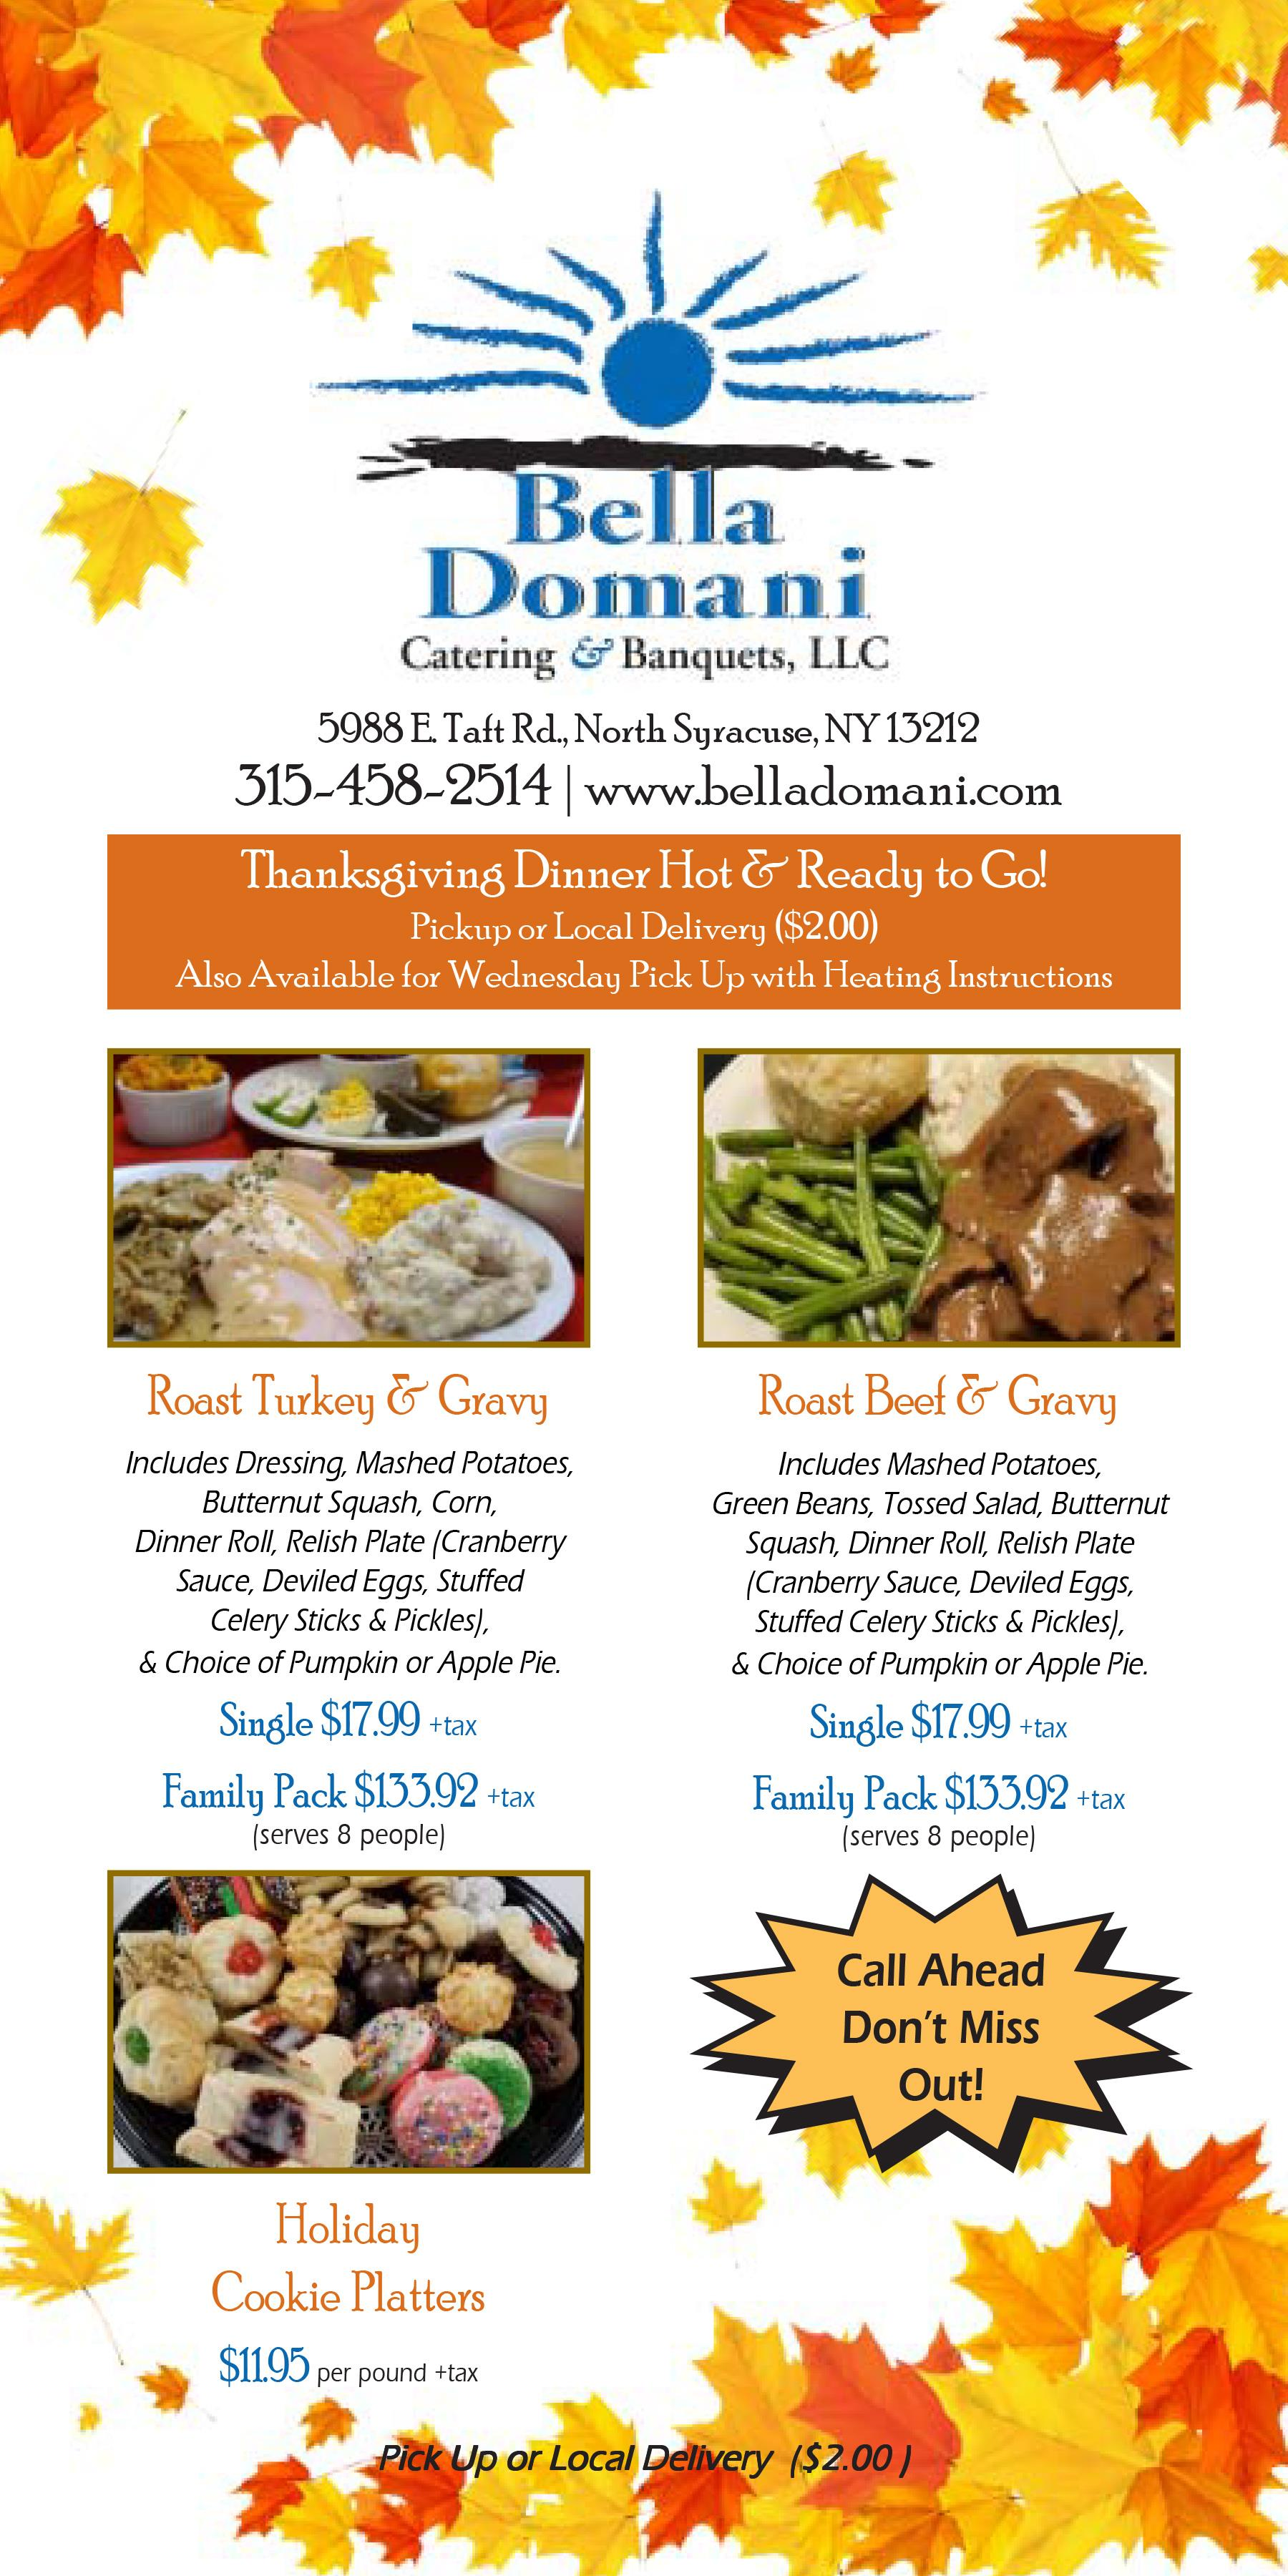 Thanksgiving Dinner Hot & Ready to Go! Pickup or local delivery ($2.00) Also available for Wednesday pick up with heating instructions. Roast Turkey & Gravy: Includes Dressing, Mashed Potatoes, Butternut Squash, Corn, Dinner Roll, Relish Plate (Cranberry Sauce, Deviled Eggs, Stuffed Celery Sticks & Pickles), & Choice of Pumpkin or Apple Pie. Single $17.99+tax. Family Pack $133.92+tax (serves 8 people). Roast Beef & Gravy: Includes Mashed Potatoes, Green Beans, Tossed Salad, Butternut Squash, Dinner Roll, Relish Plate (Cranberry Sauce, Deviled Eggs, Stuffed Celery Sticks & Pickles), & Choice of Pumpkin or Apple Pie. Single $17.99+tax. Family Pack $133.92+tax (serves 8 people). Holiday Cookie Platters: $11.95 per pound +tax . Call Ahead don't miss out!